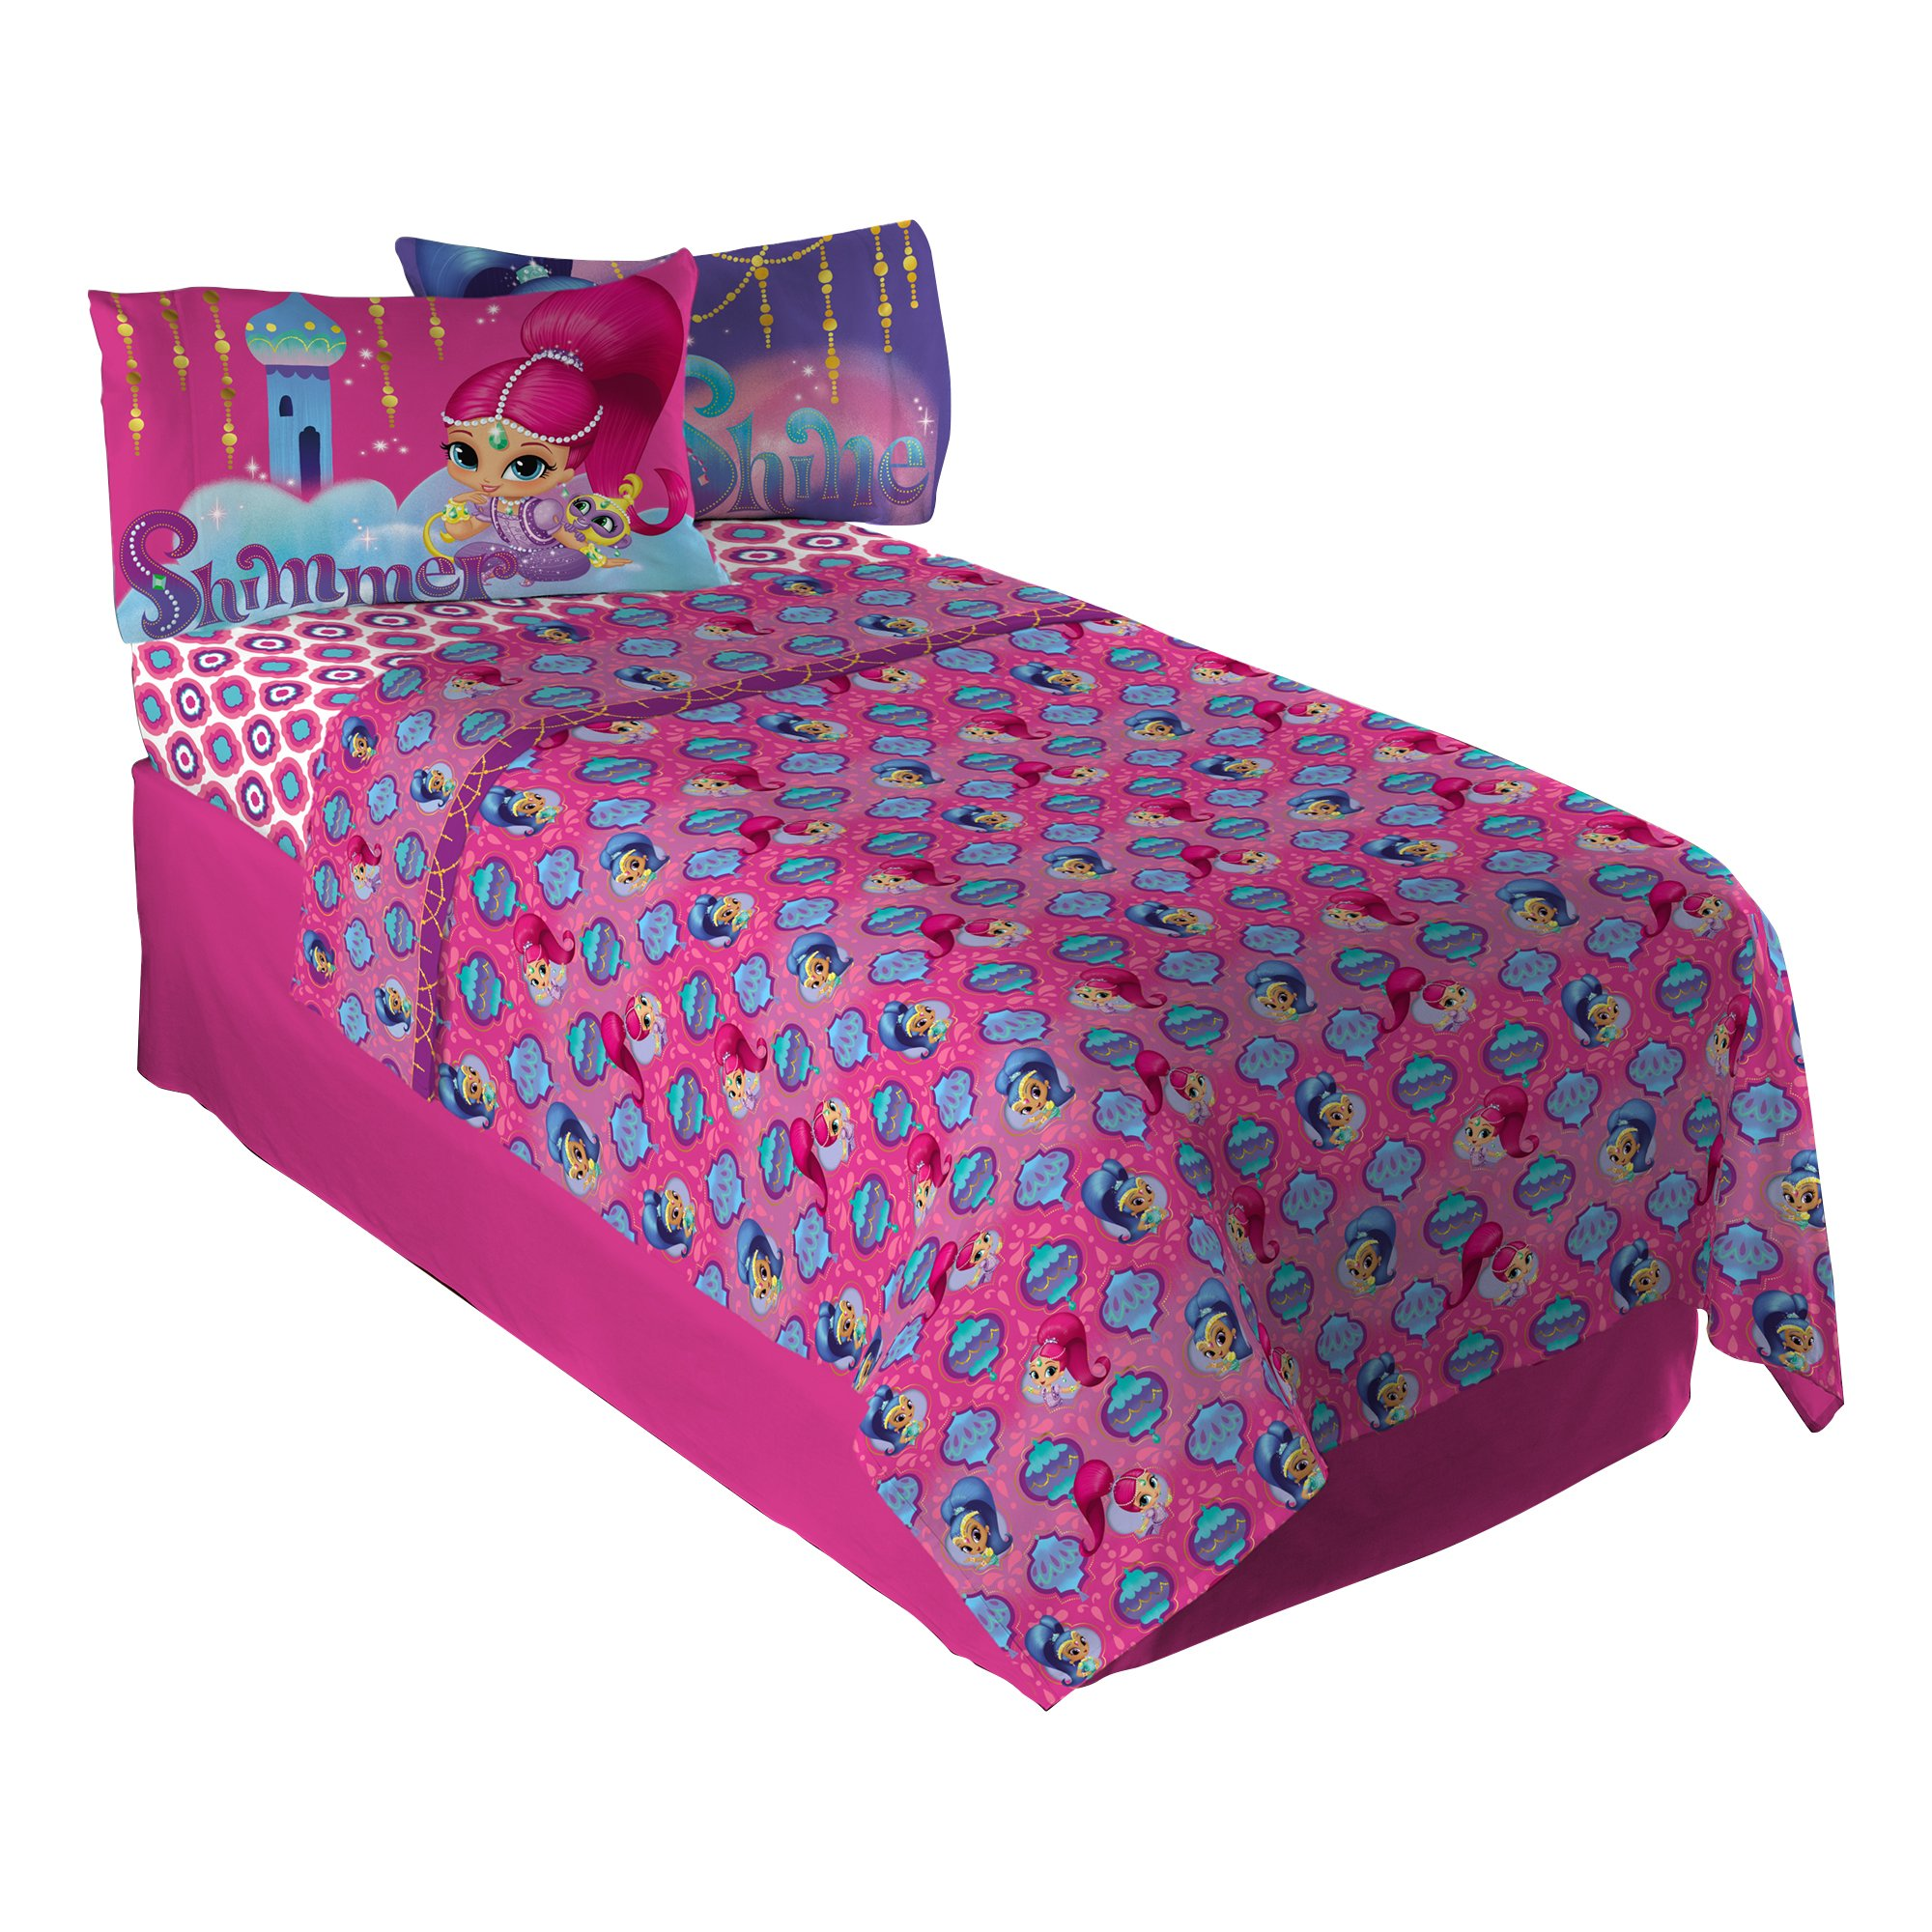 Shimmer & Shine Magical Wonder Sheet Set, Twin